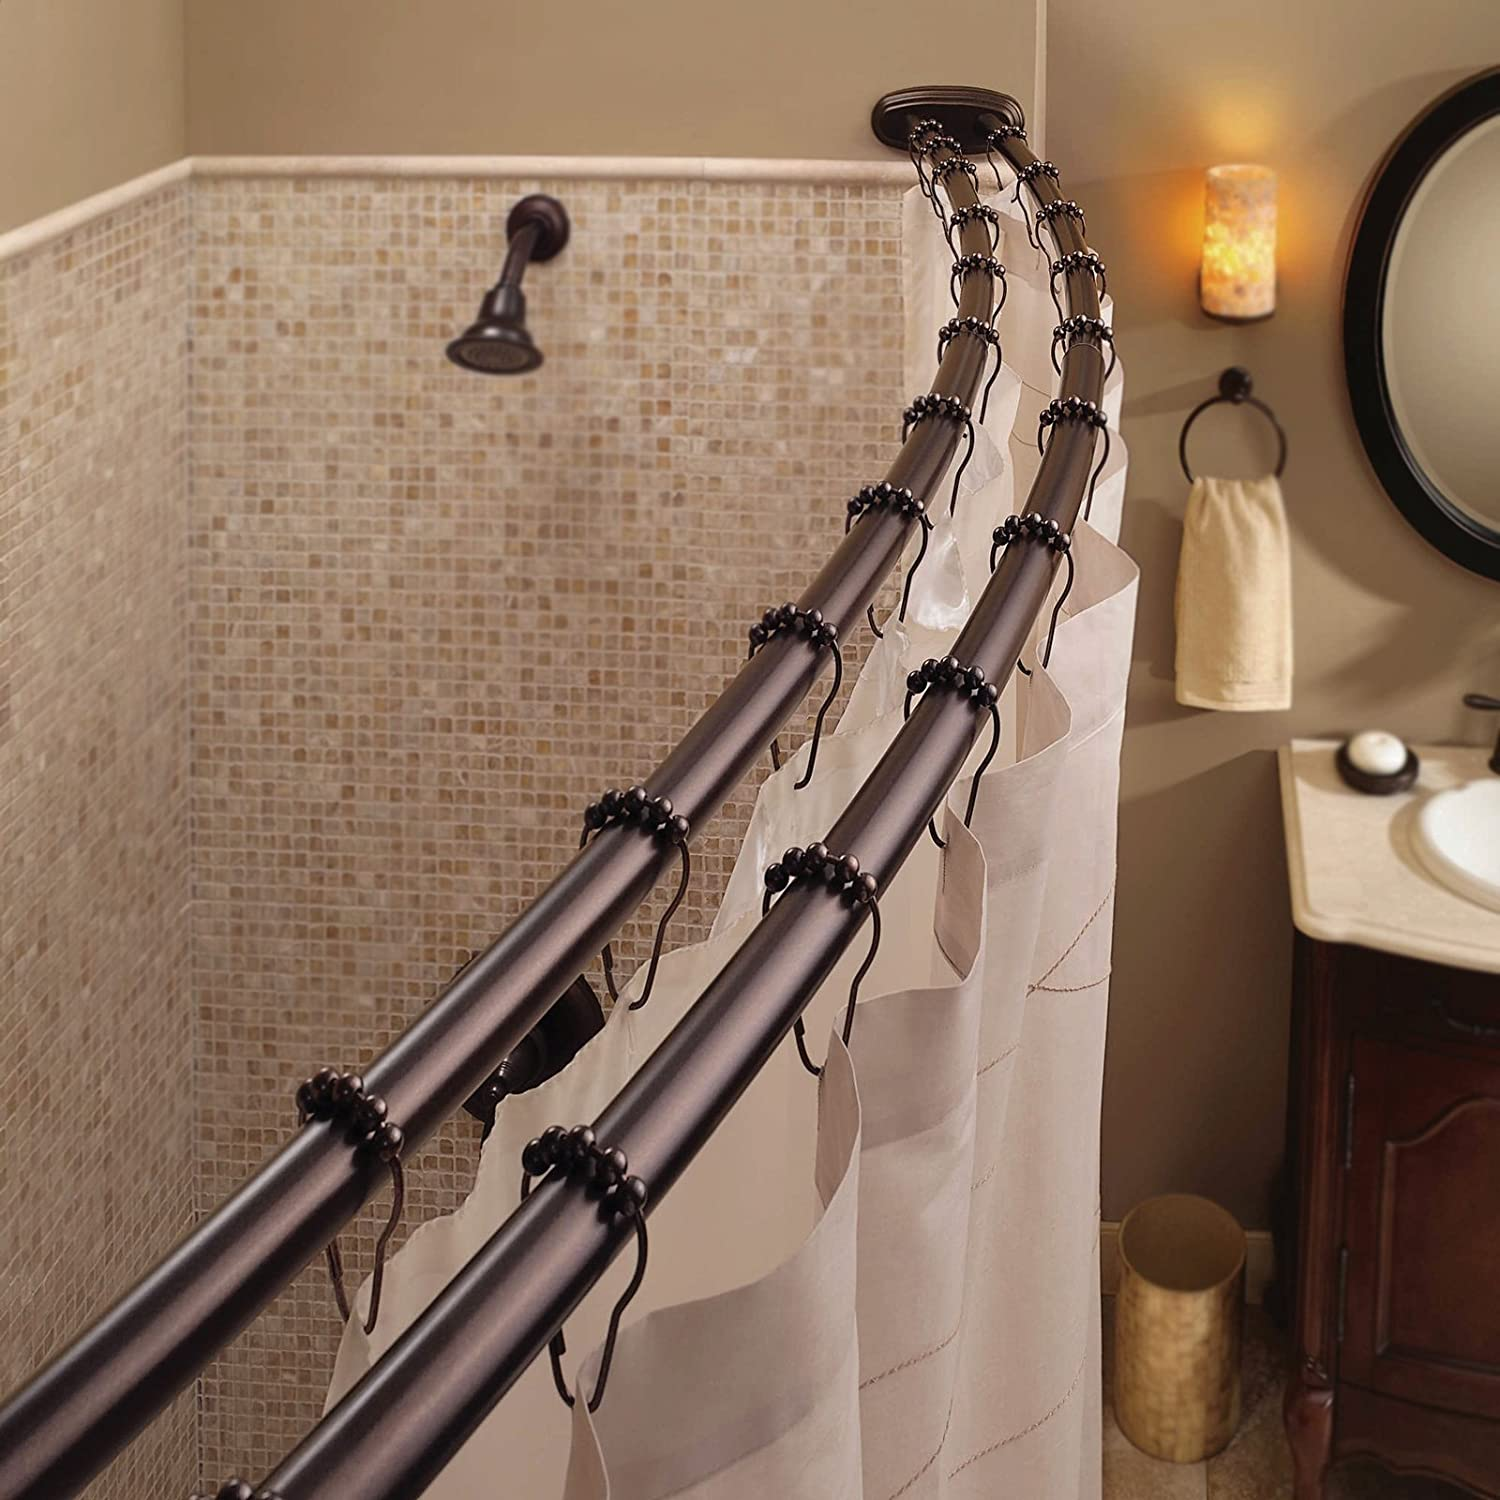 Shower curtain rods - Amazon Com Bennington Adjustable Double Curved Shower Curtain Rod Oil Rubbed Bronze Home Kitchen